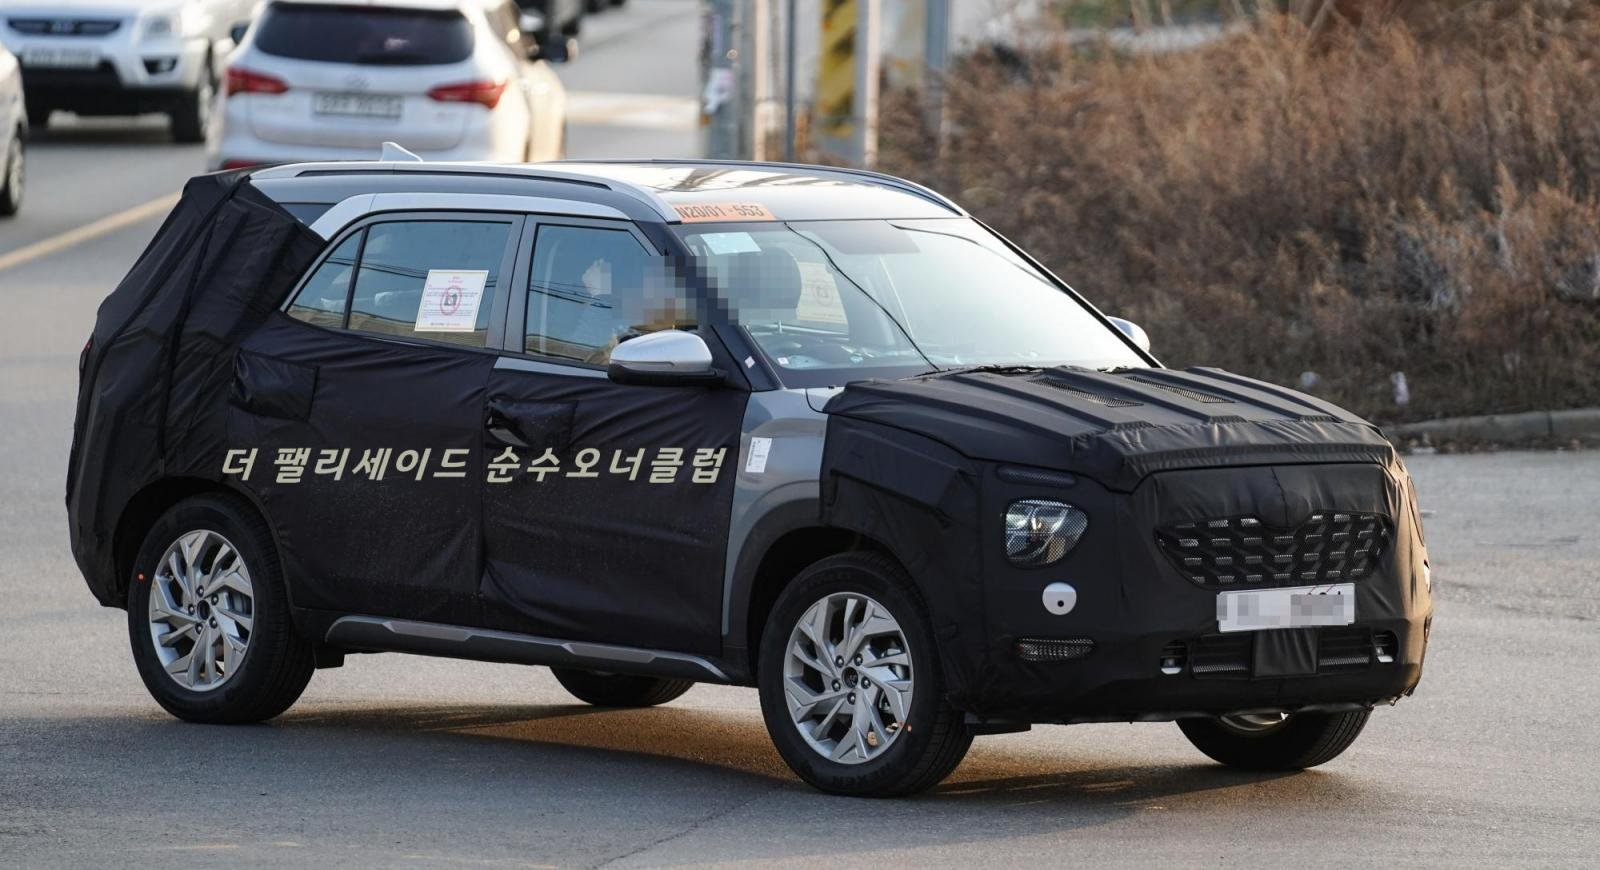 7-Seater Hyundai Creta To Feature A Different Design For Rear-End